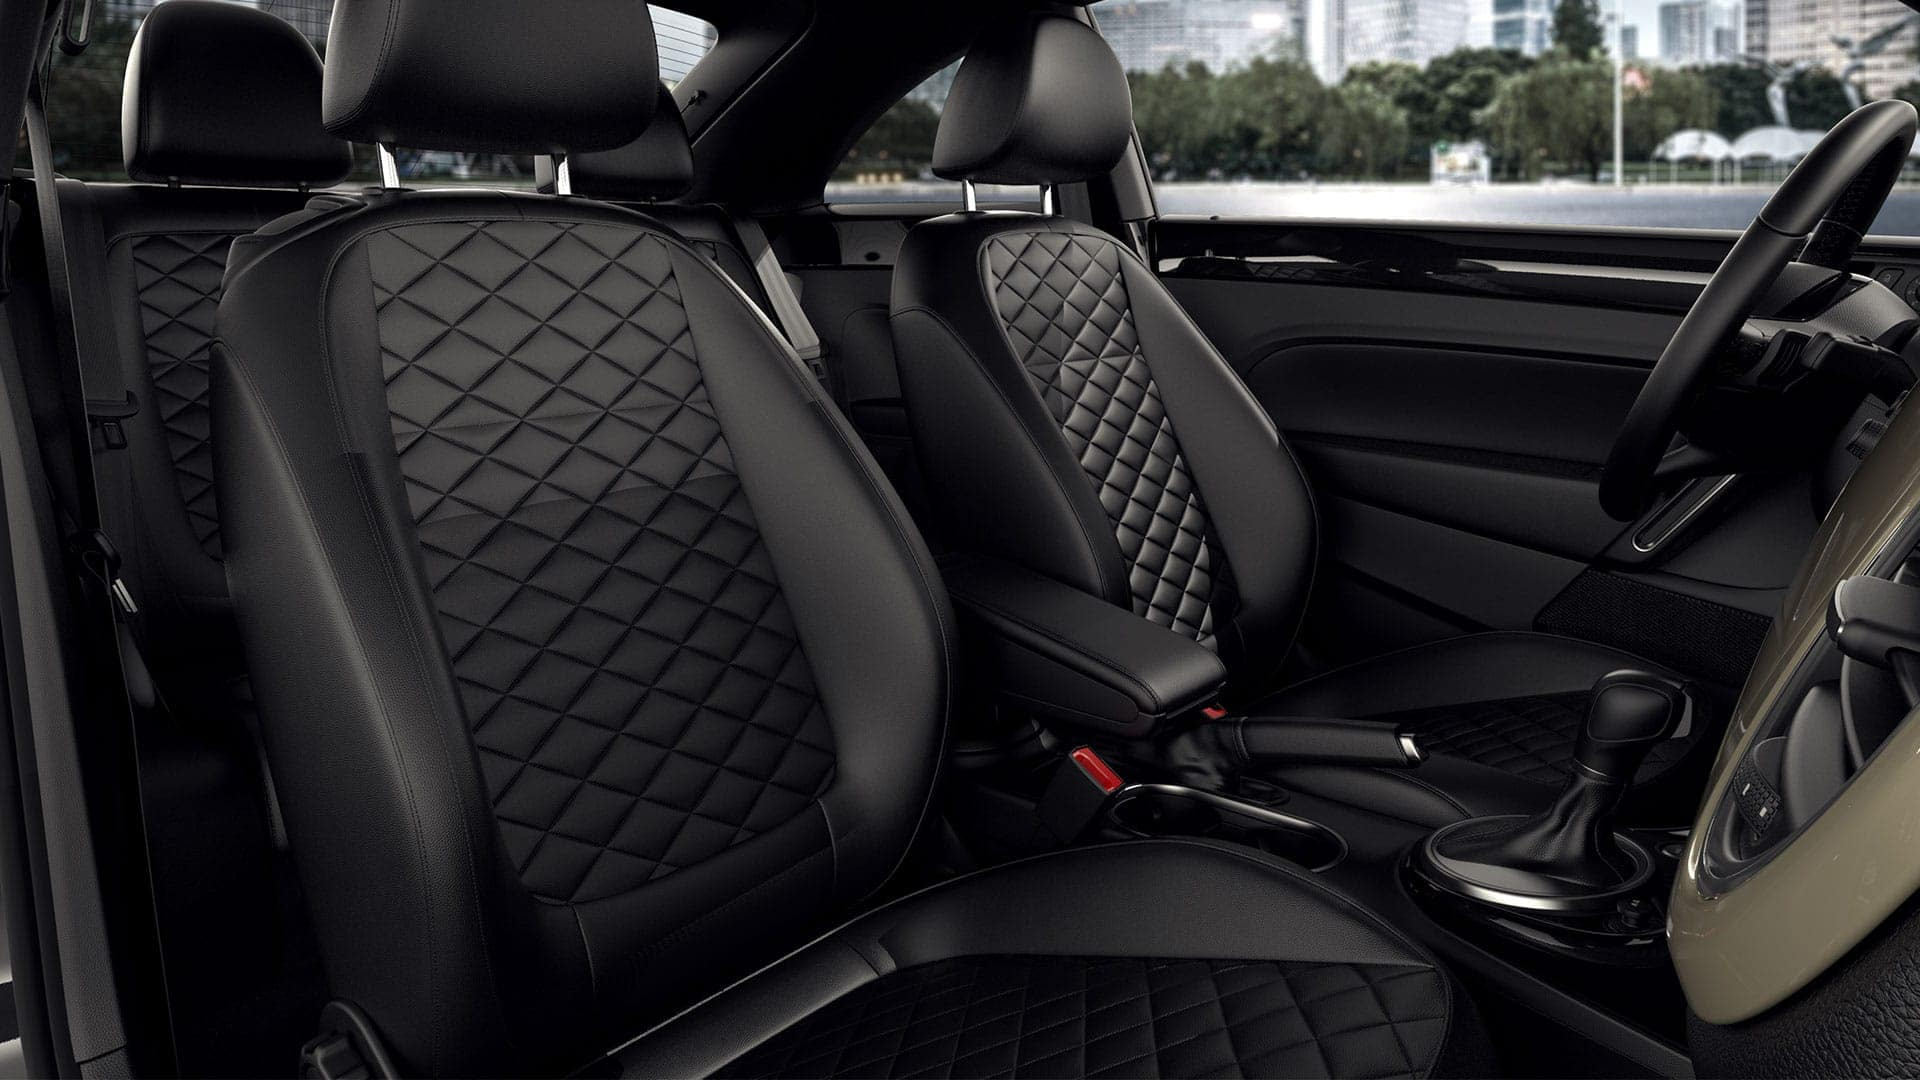 2019 VW Beetle diamond seats